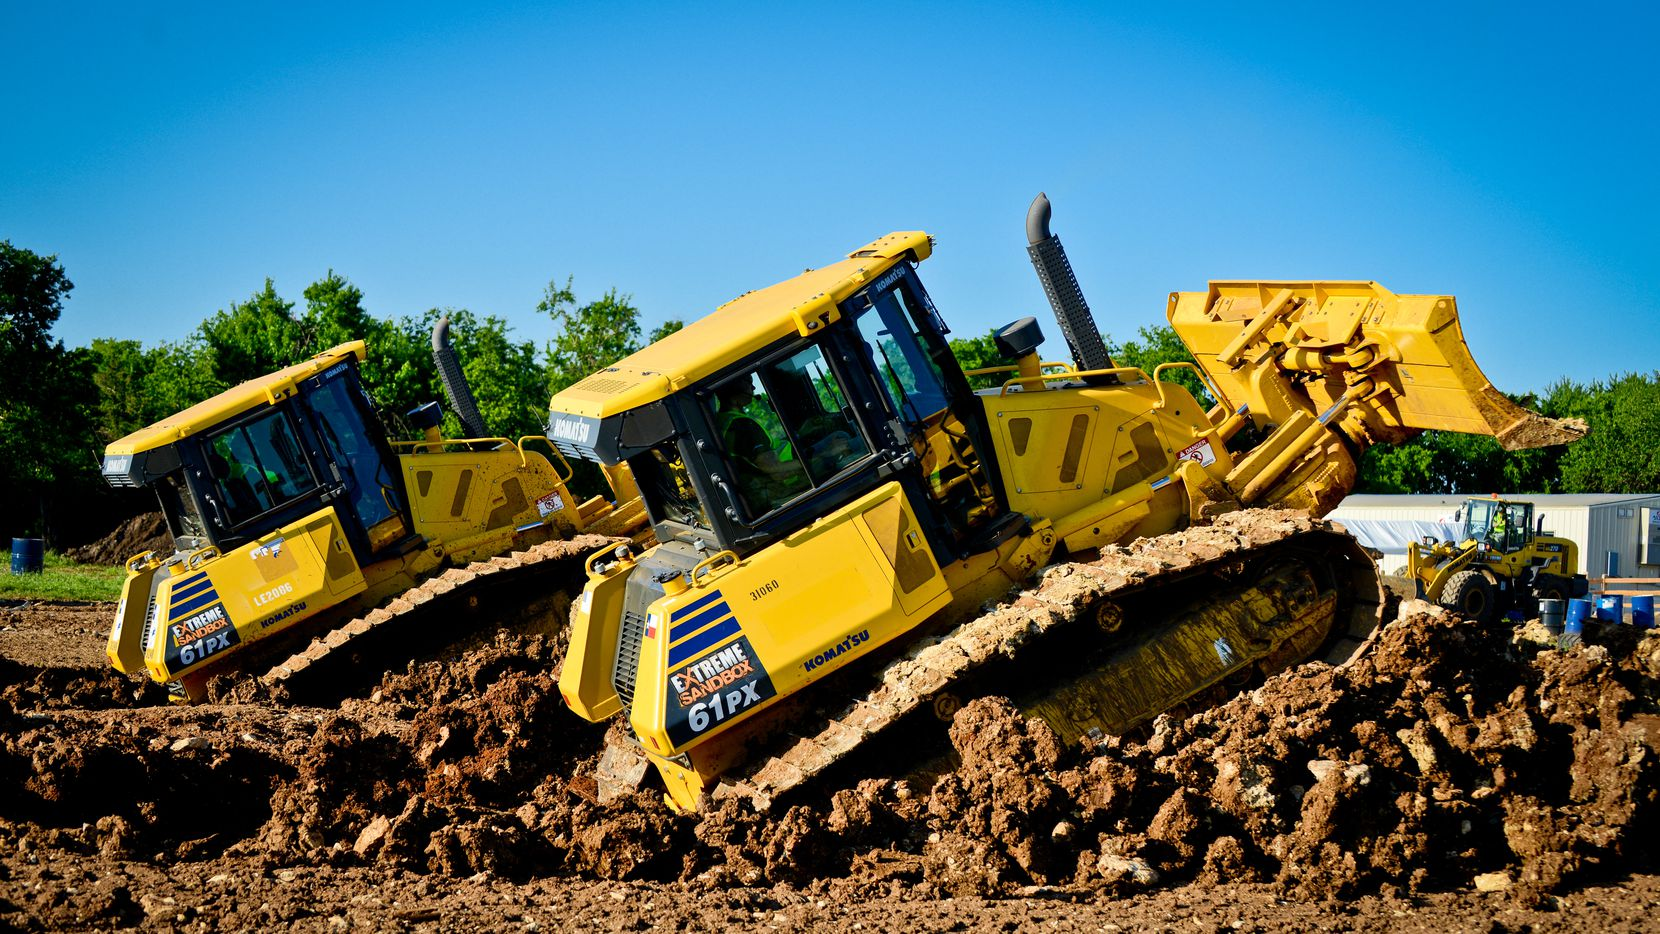 At Extreme Sandbox, you can social distance while driving a 10-ton bulldozer.